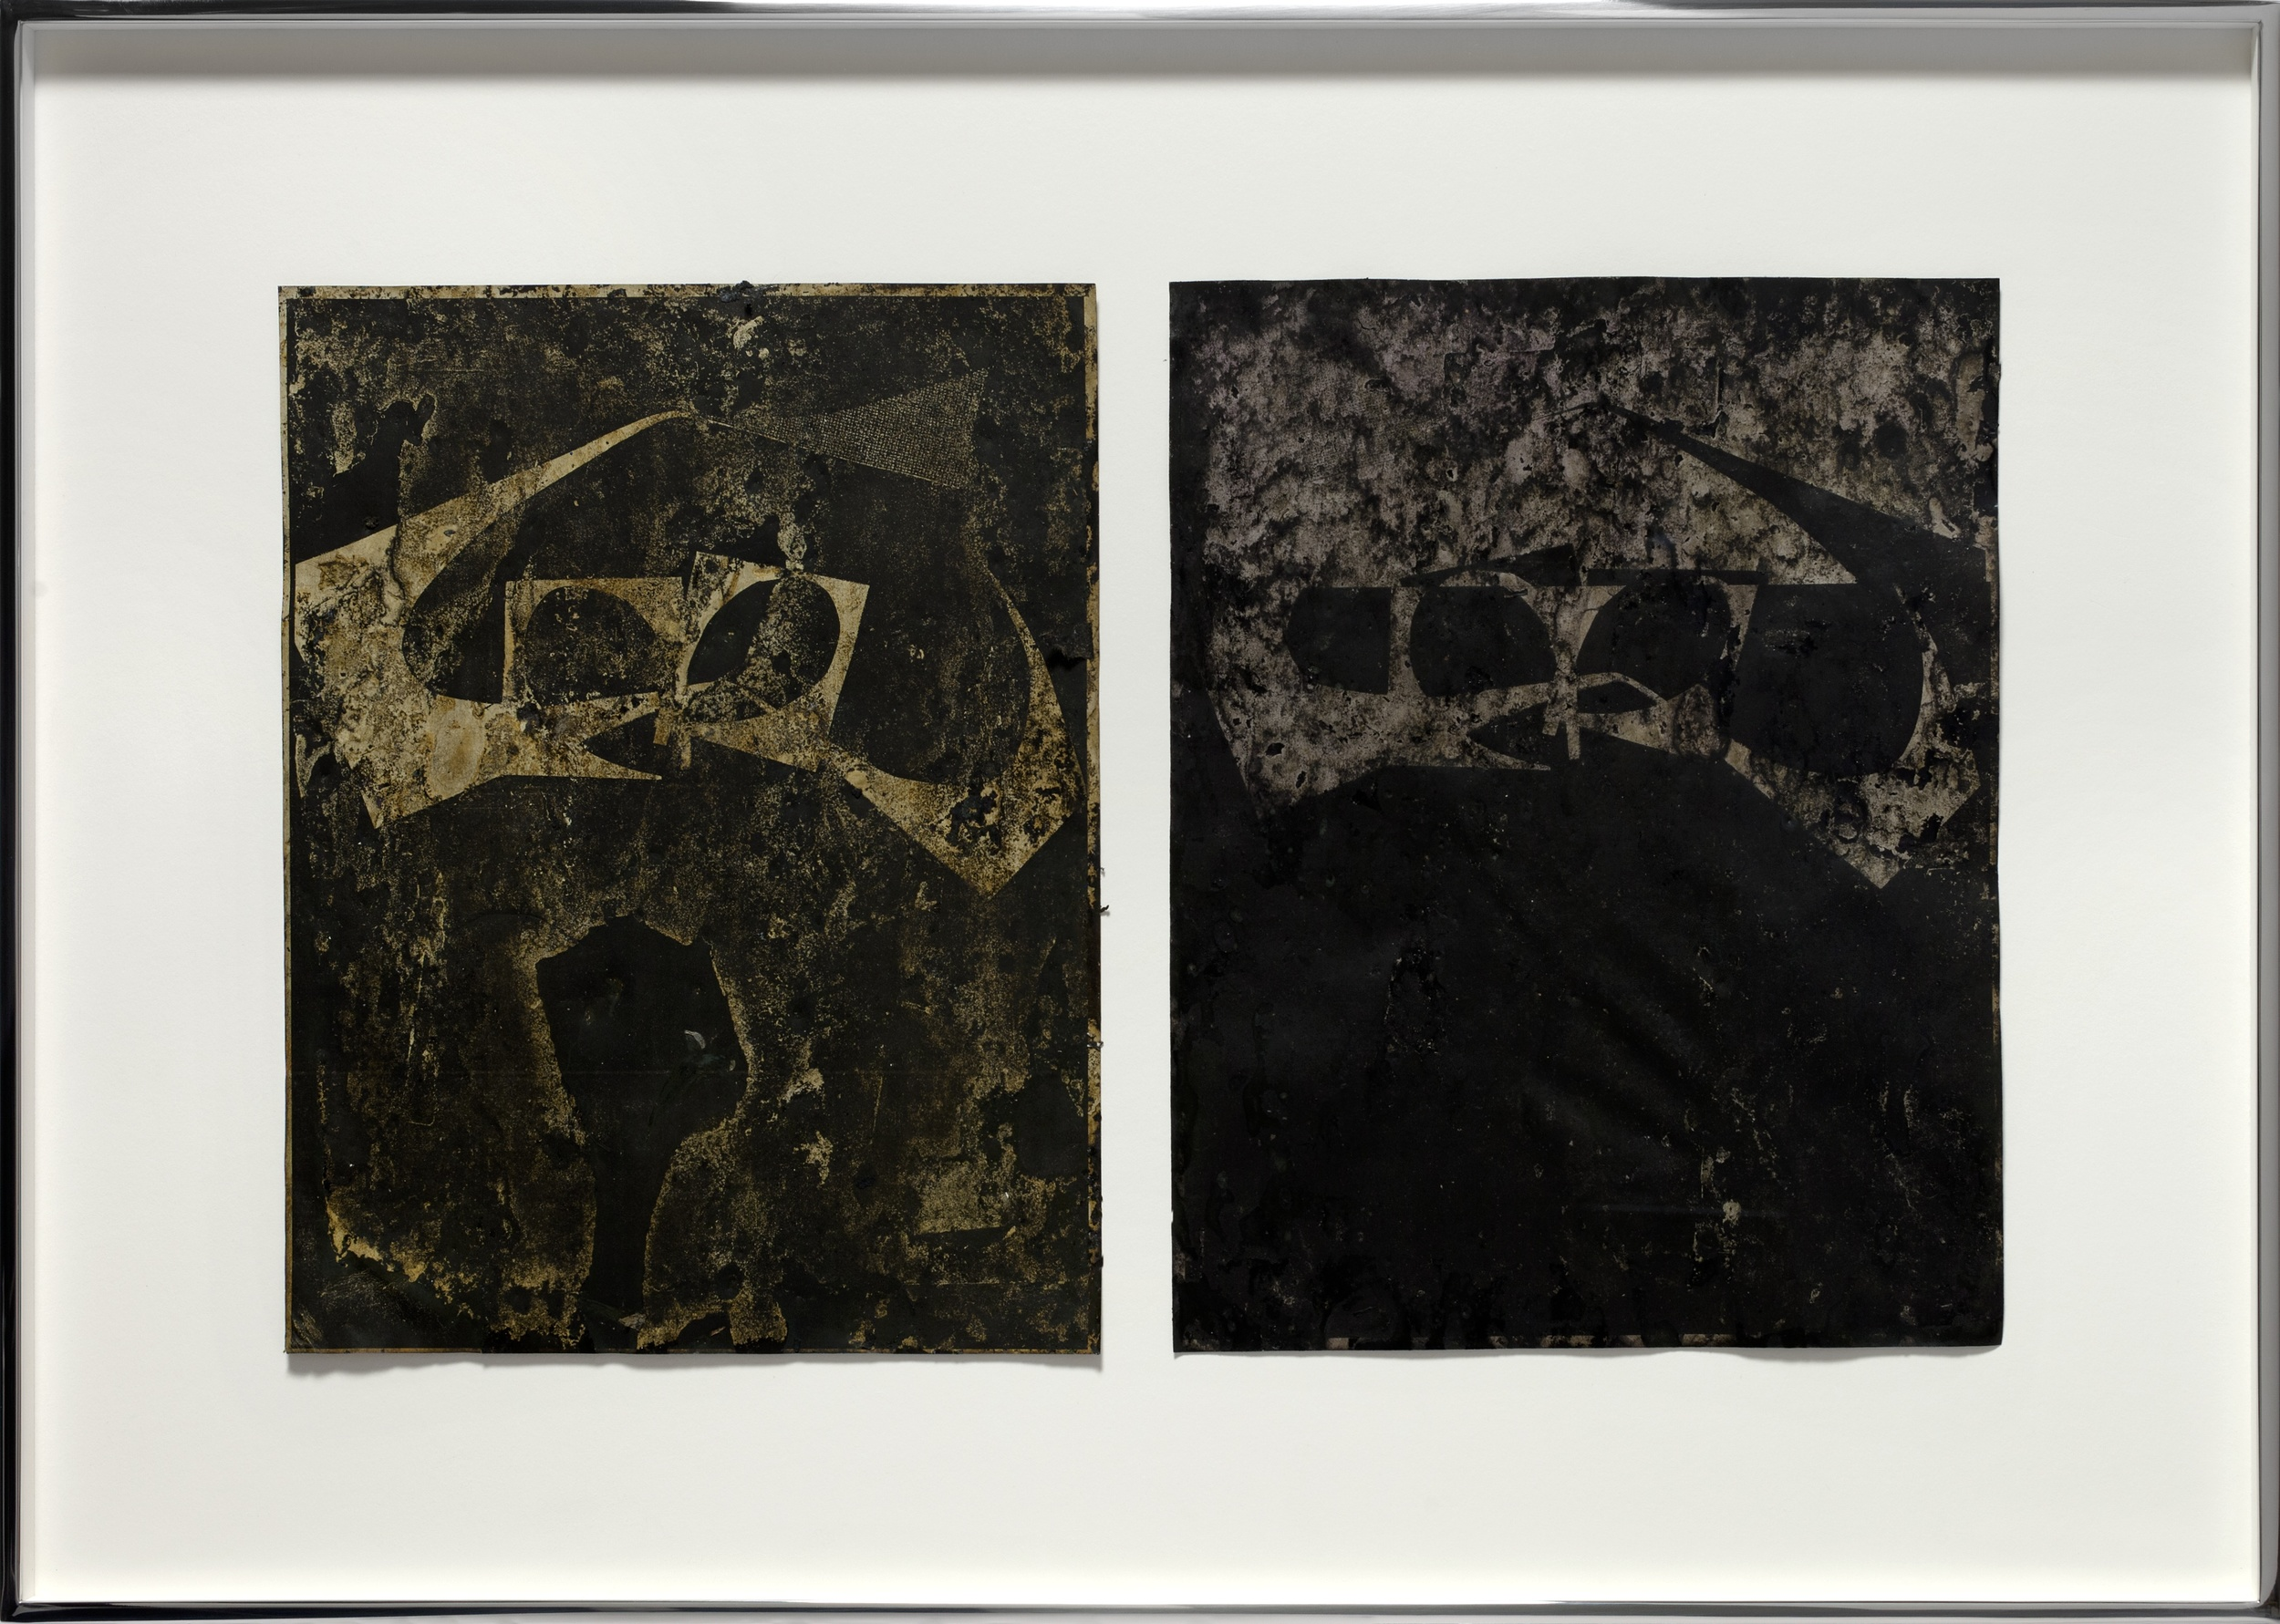 Untitled 2009 - 2014 Inks and mixed media on two photocopies 40.6 x 58.4 cm / 16 x 23 in framed